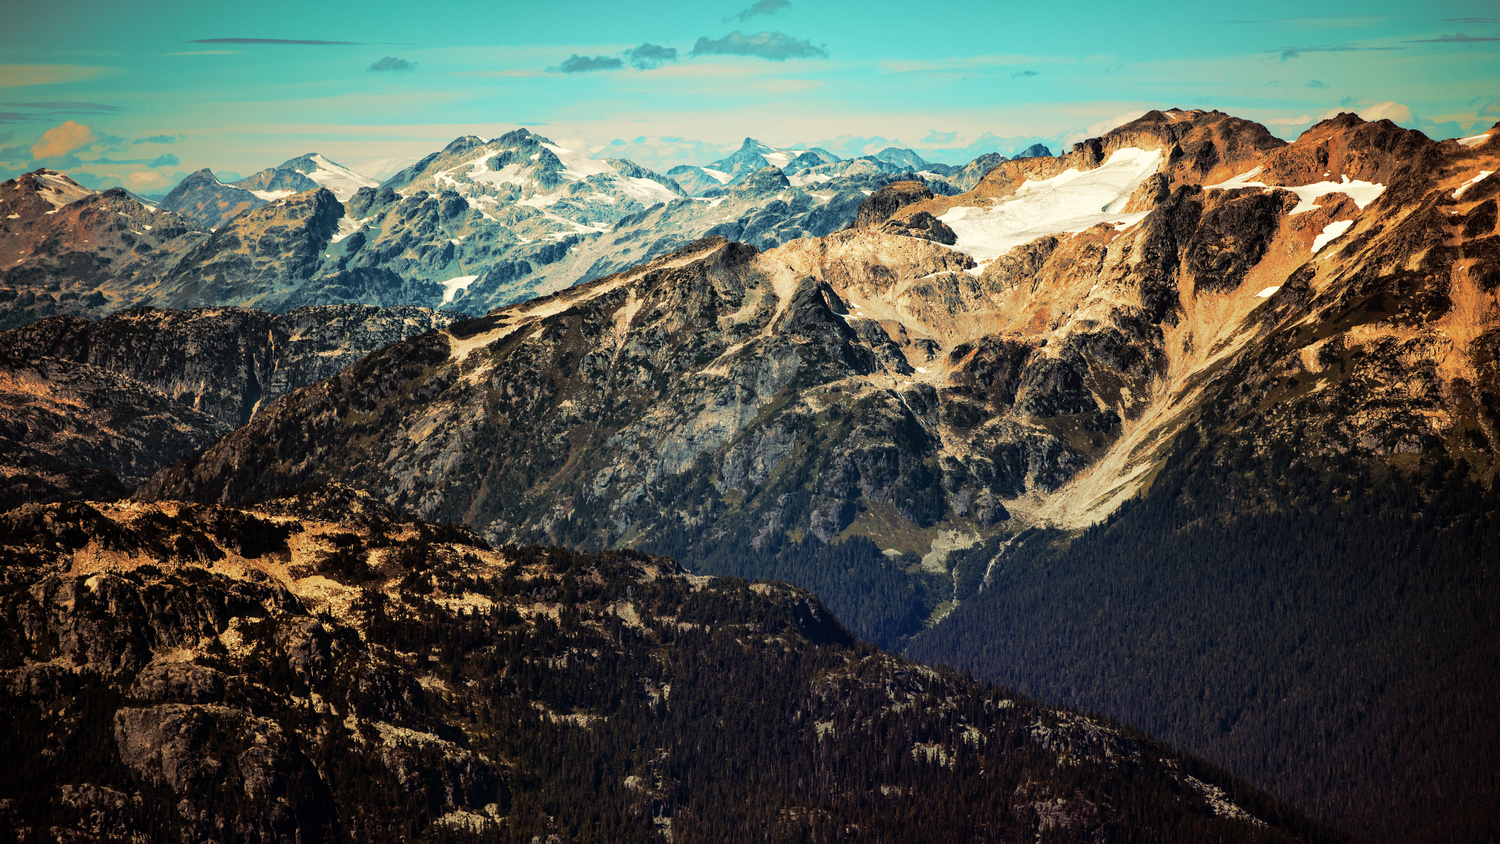 Looking into the distance from the Whistler Summit by Andreas Korfmann